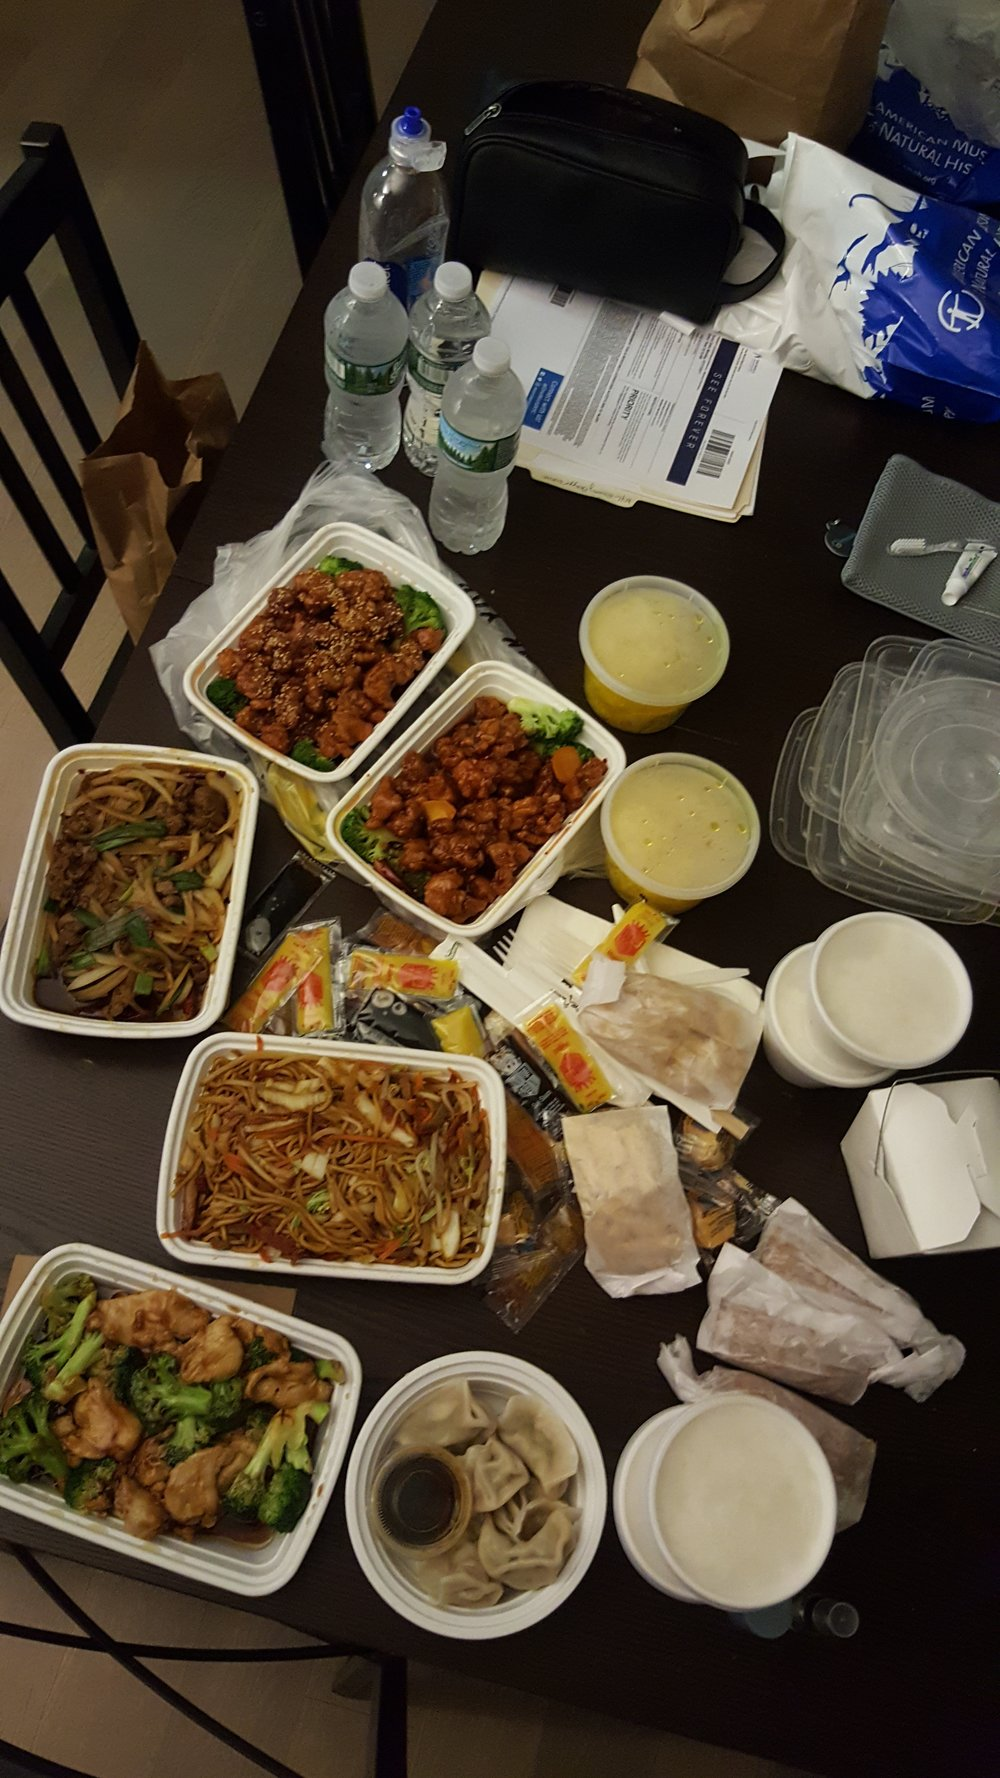 Chinese Takeout at it's finest! -